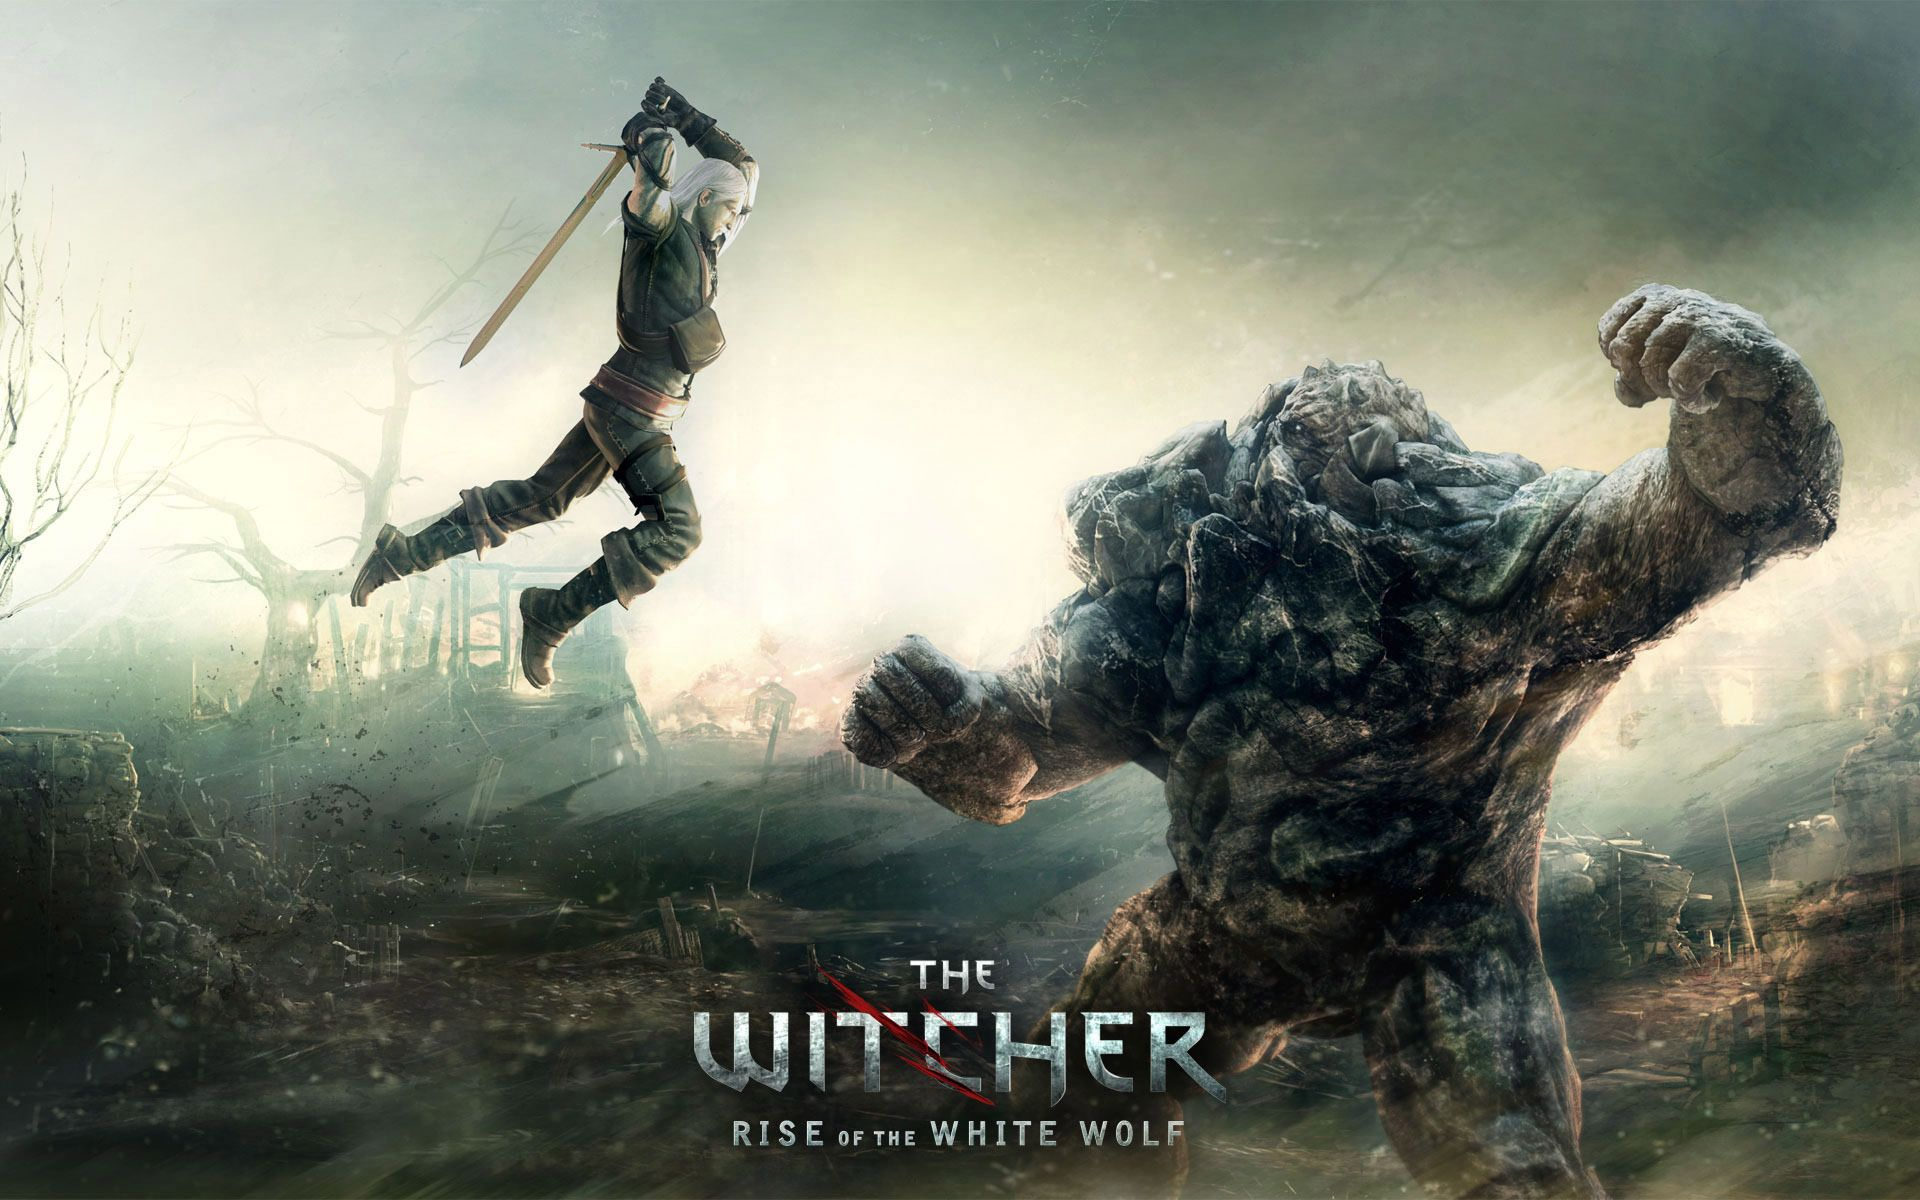 The witcher hd wallpaper id 19201200 the witcher 3 wallpaper 31 the witcher hd wallpaper id 19201200 the witcher 3 wallpaper 31 wallpapers adorable wallpapers voltagebd Images